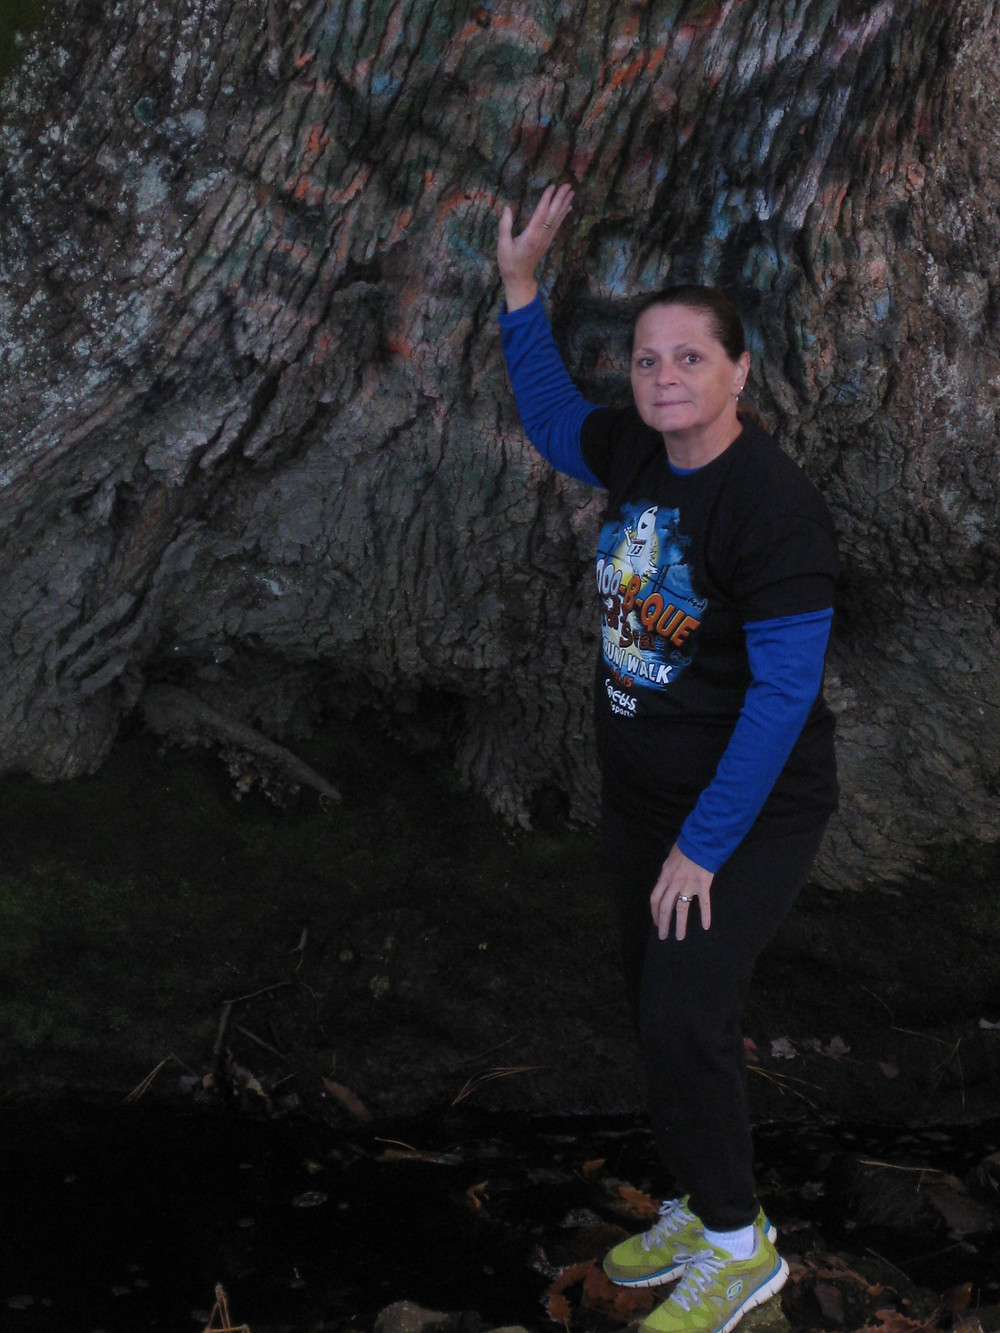 Dr. Carol A. Pollio visits the Witch's Tree